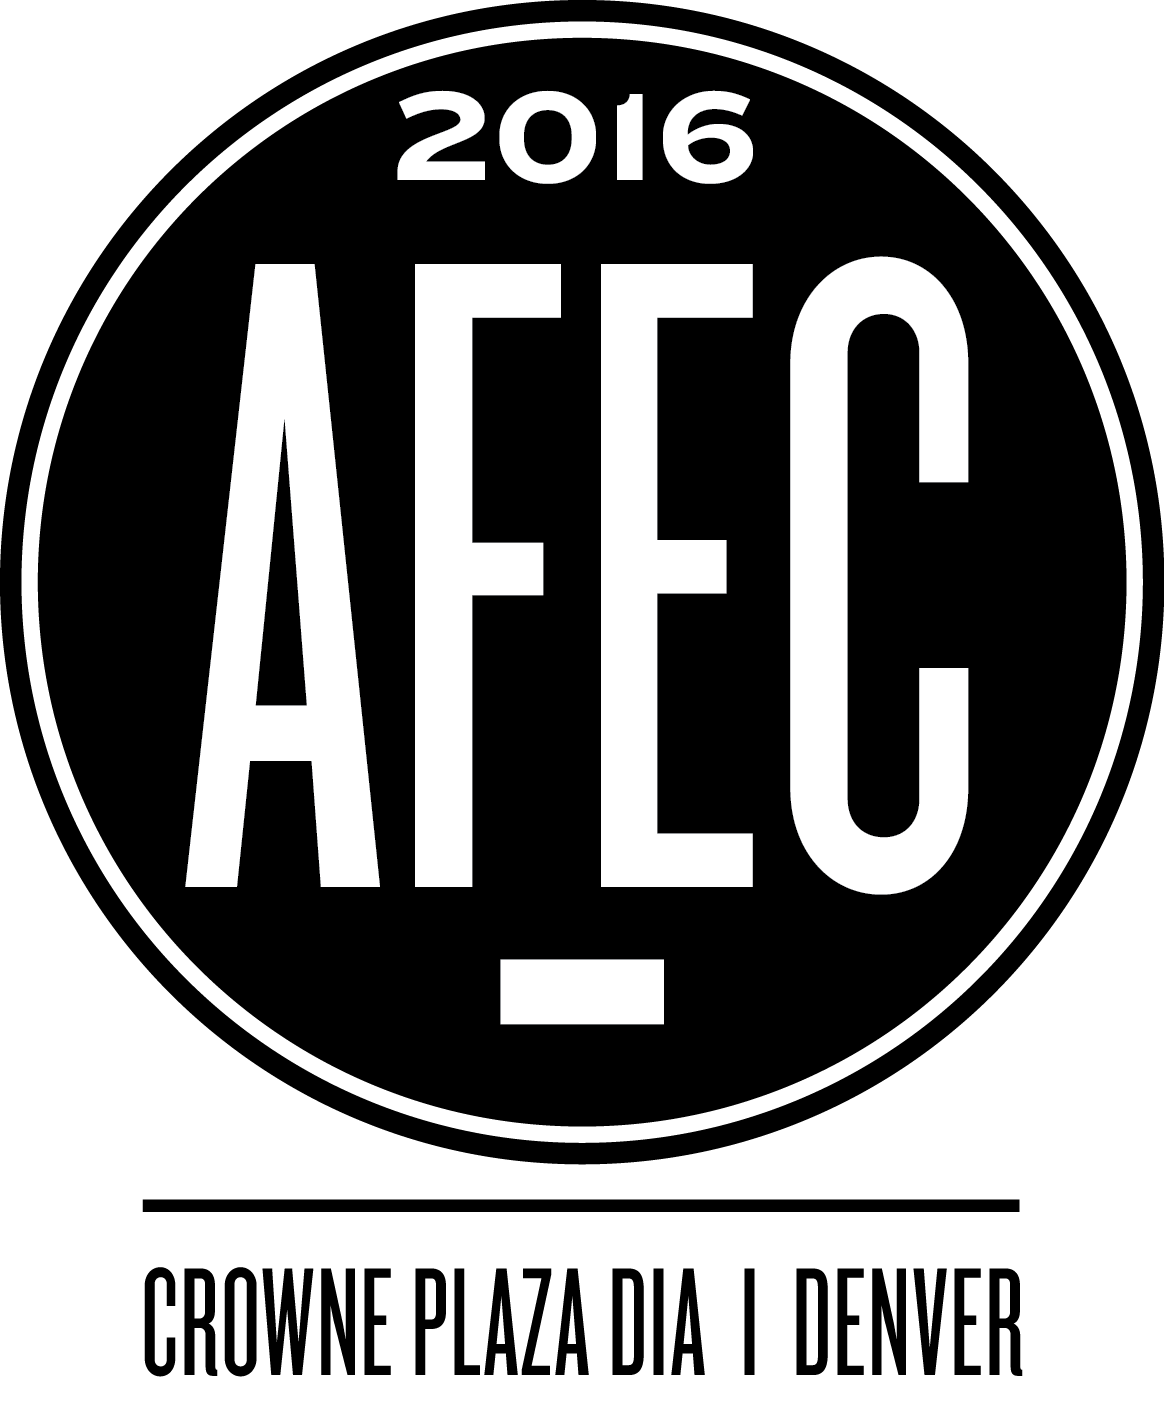 AFEC Exhibitor Registration